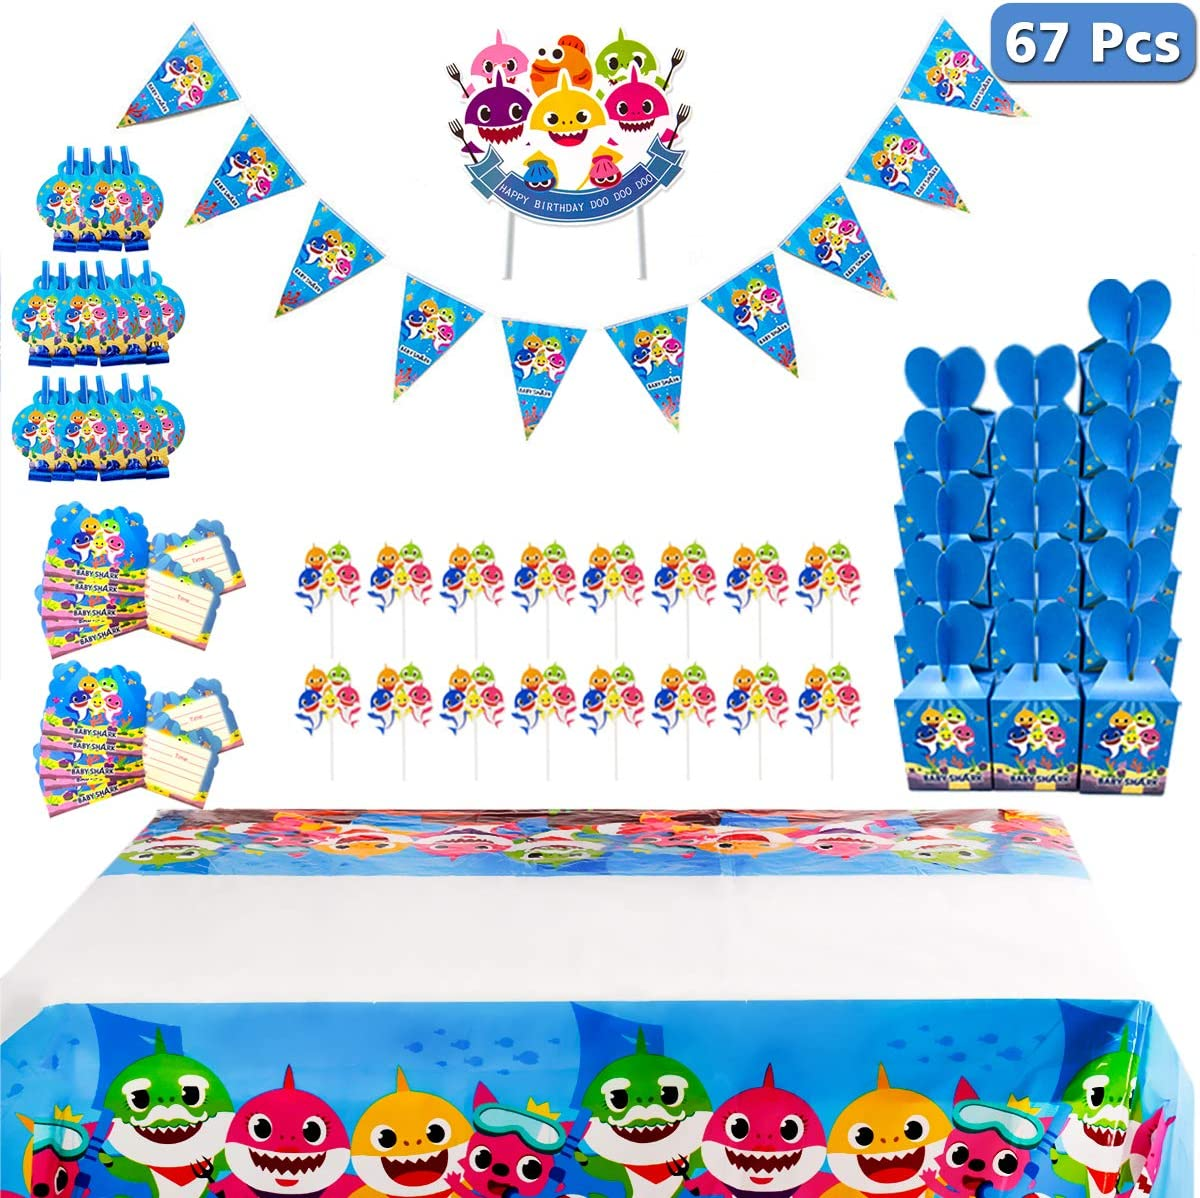 Shark Party Supplies for Baby - 67 Pcs with Blowouts, Invitations, Candy Boxes, Cake Toppers, Pennant, Tablecloth Birthday Party Favor Pack Set for Kids Girls